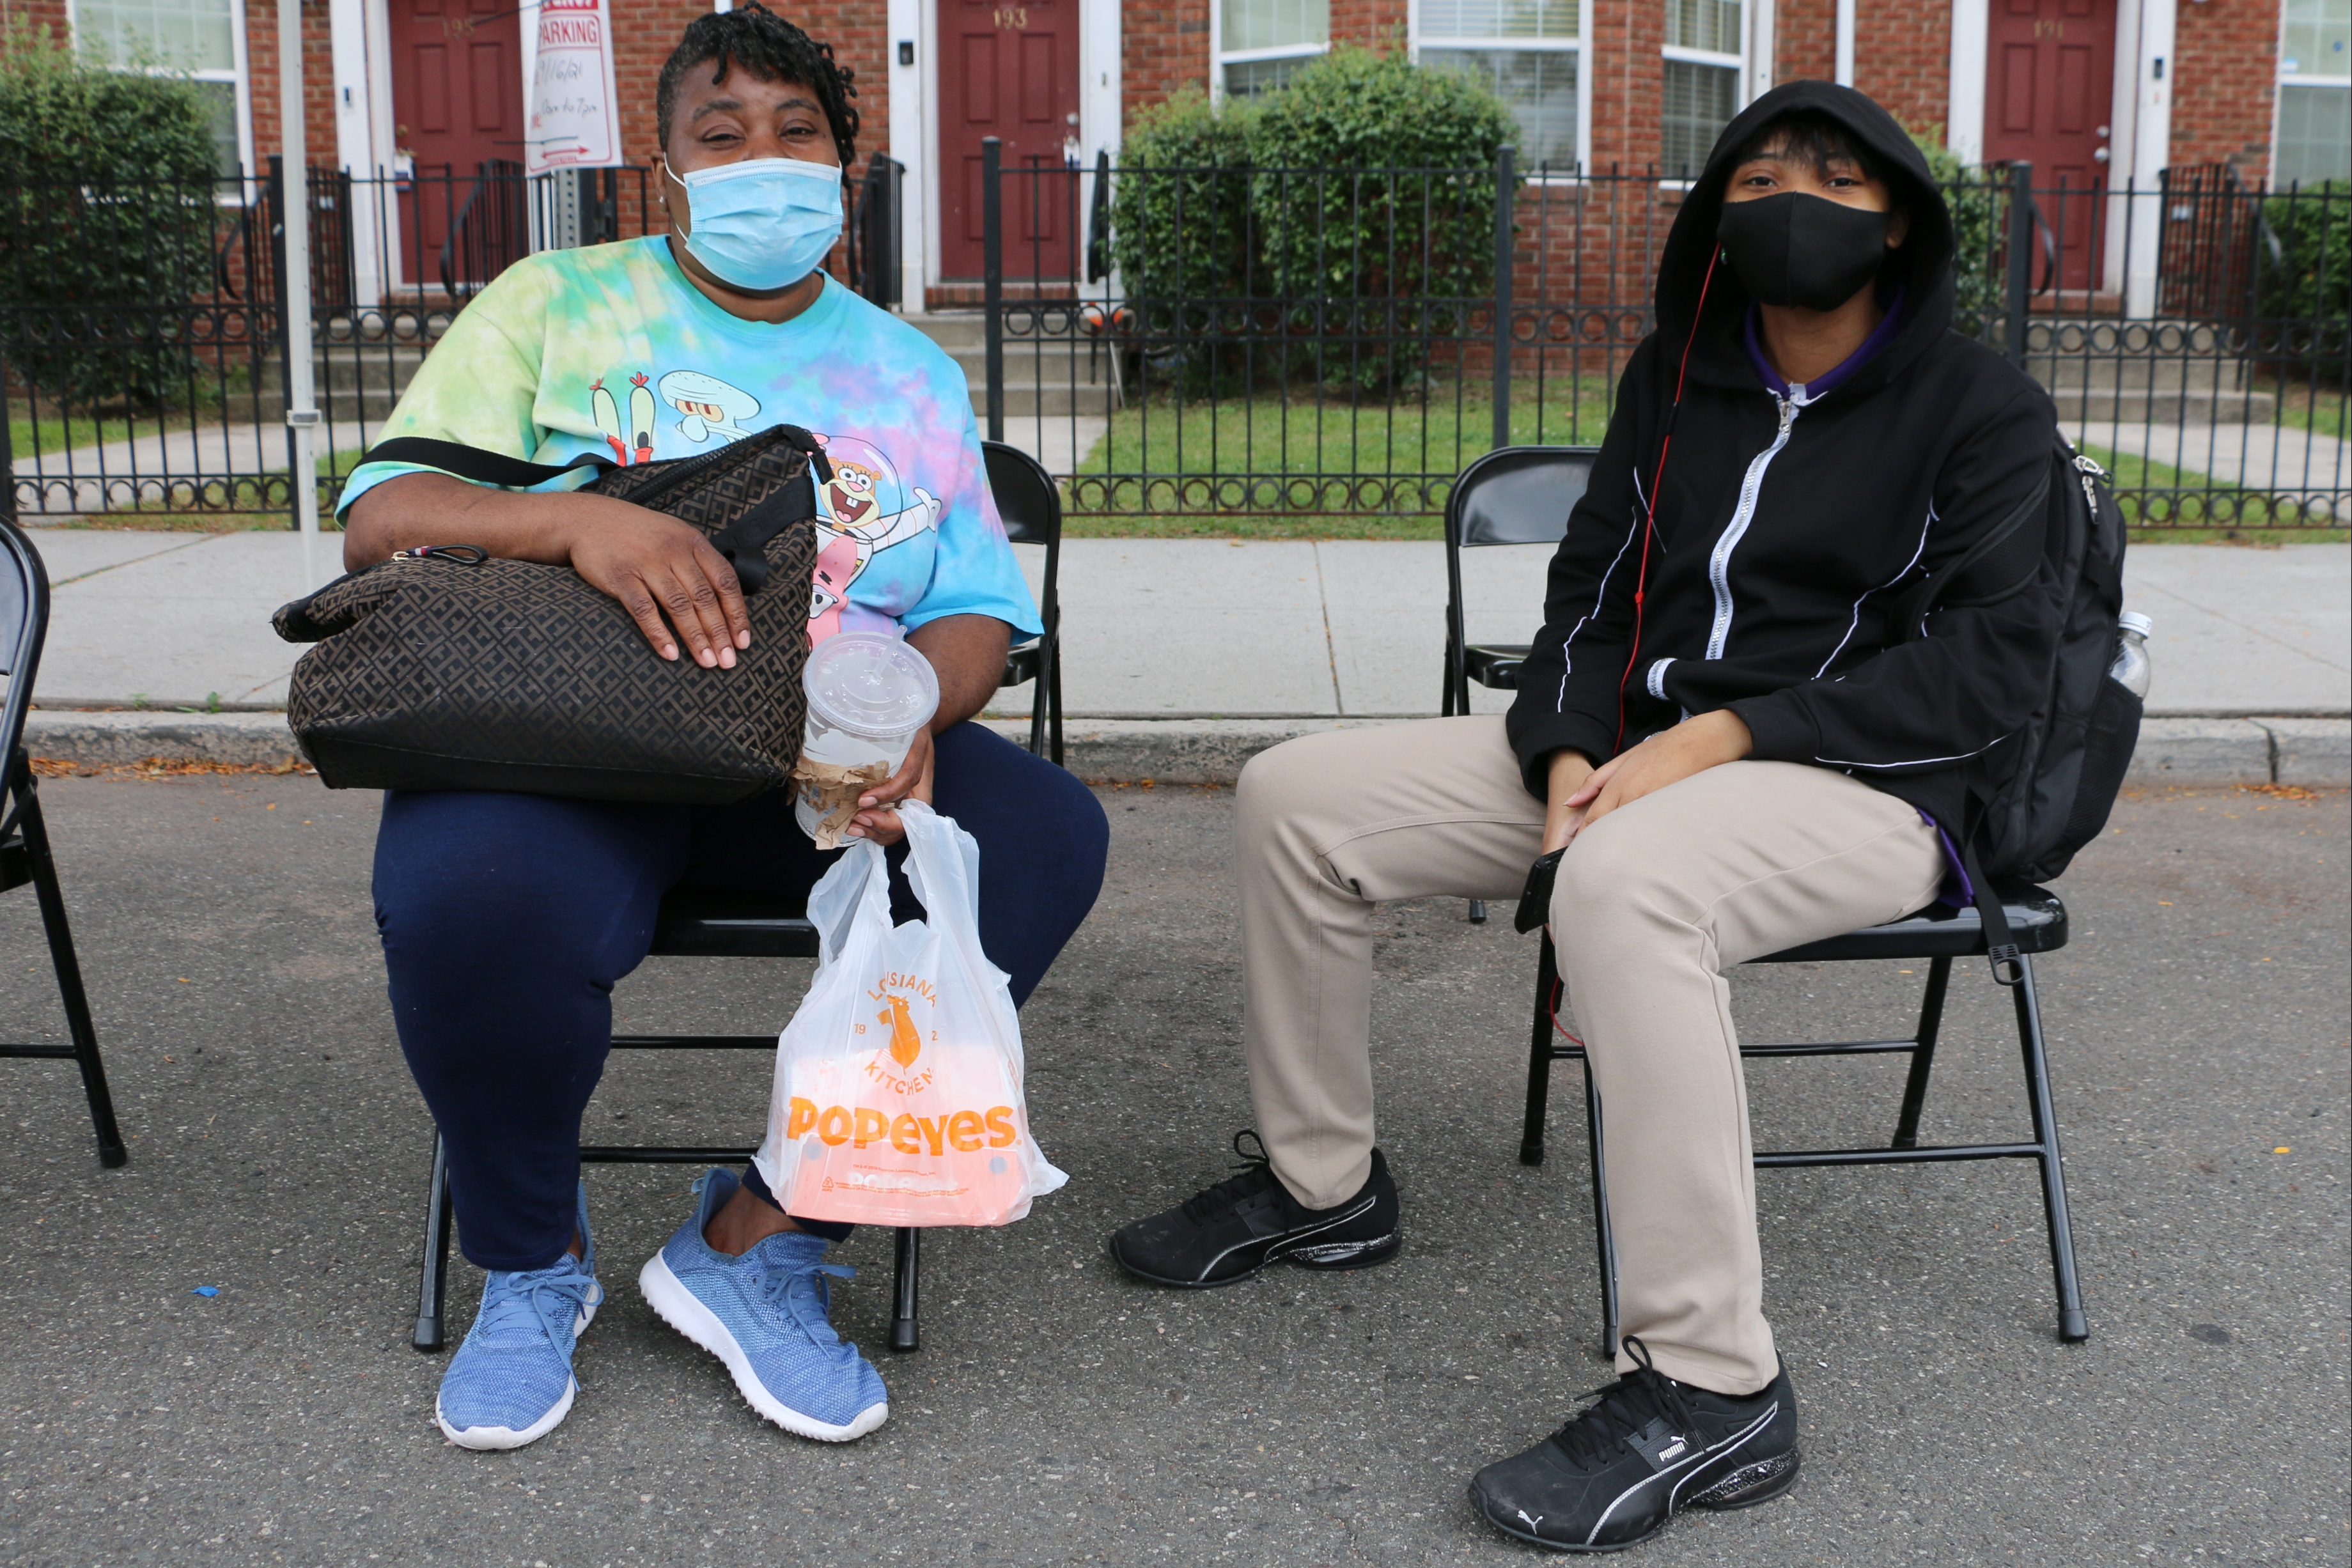 A mother and daughter, wearing masks, sit on folding chairs outside a pop-up COVID vaccination clinic in Newark.